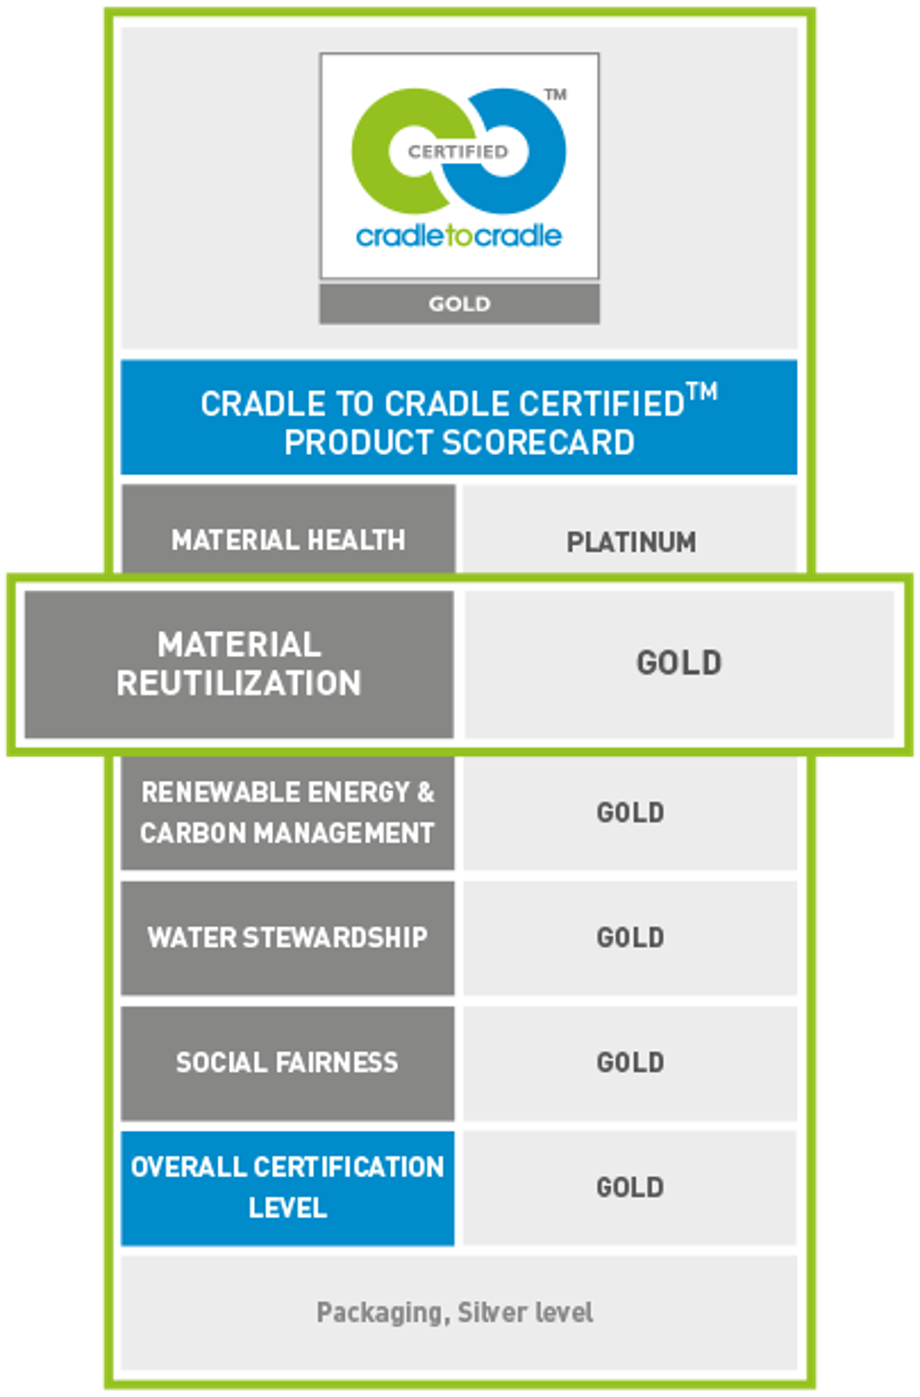 werner mertz professional green care cradle to cradle c2c duurzaamheid score card material reutilization gold